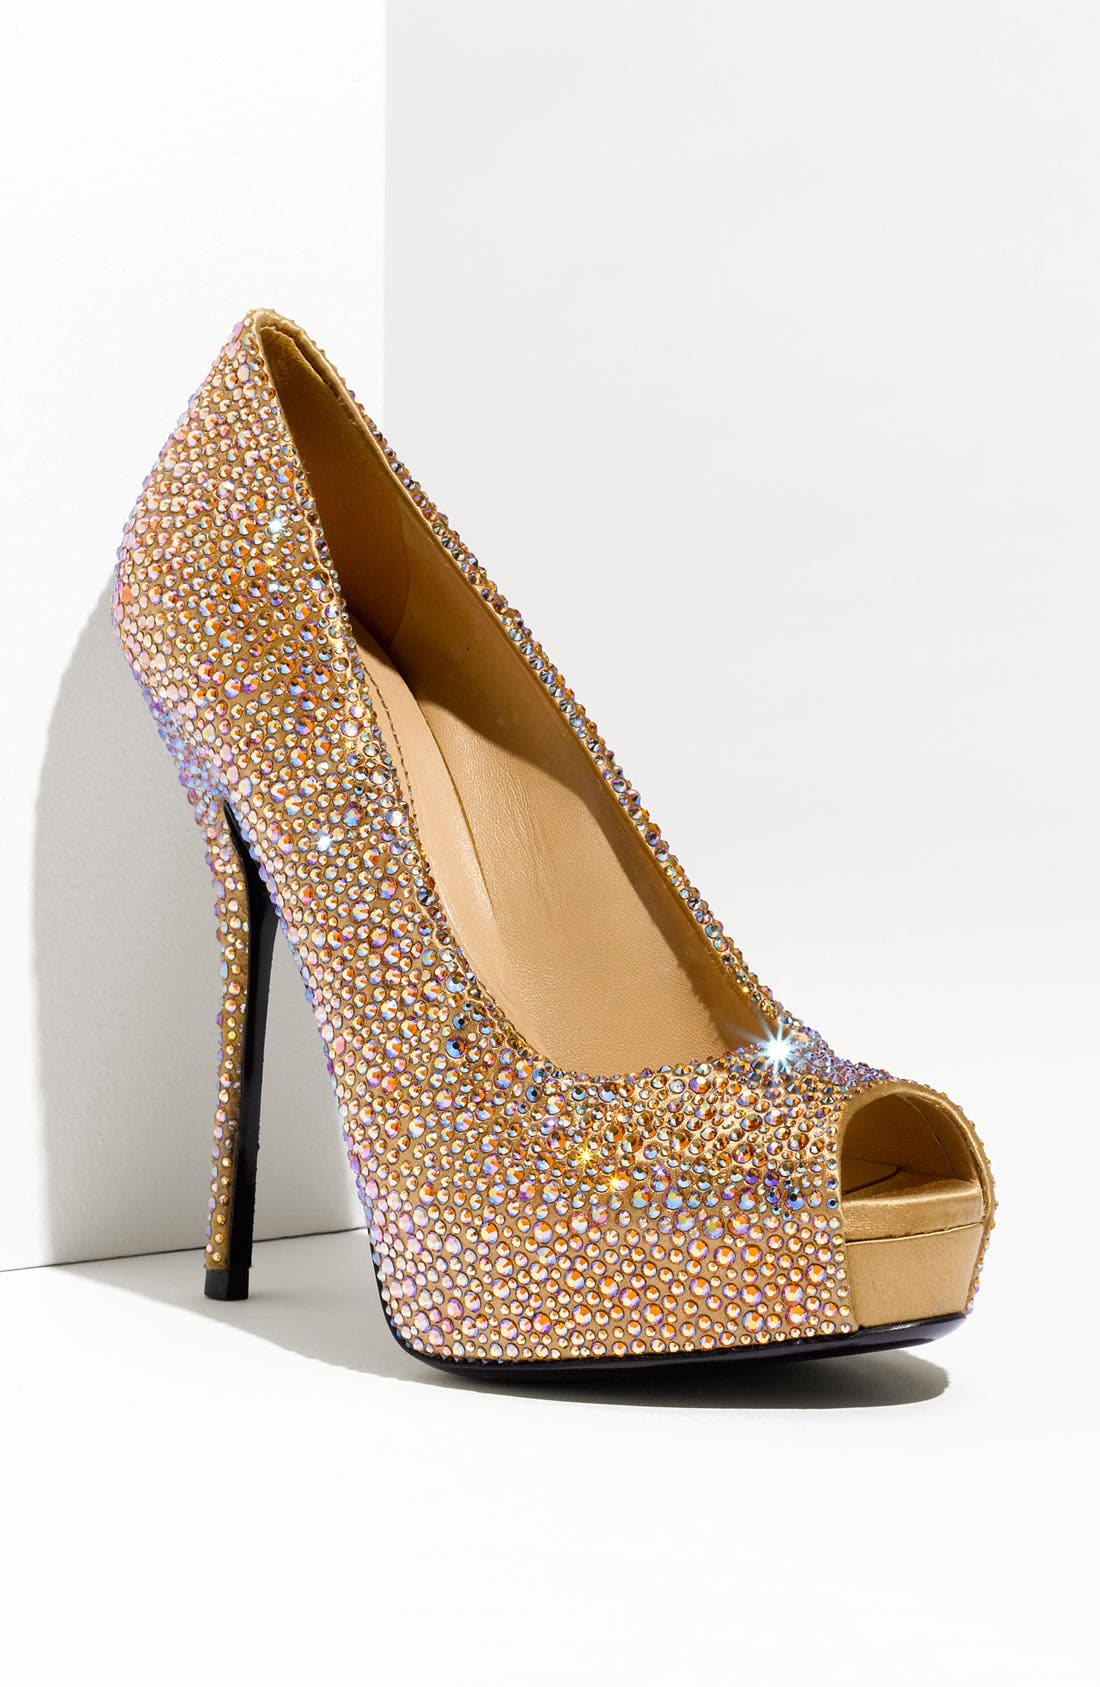 Alternate Image 1 Selected - Gucci 'Sofia' Crystal Embellished Platform Pump